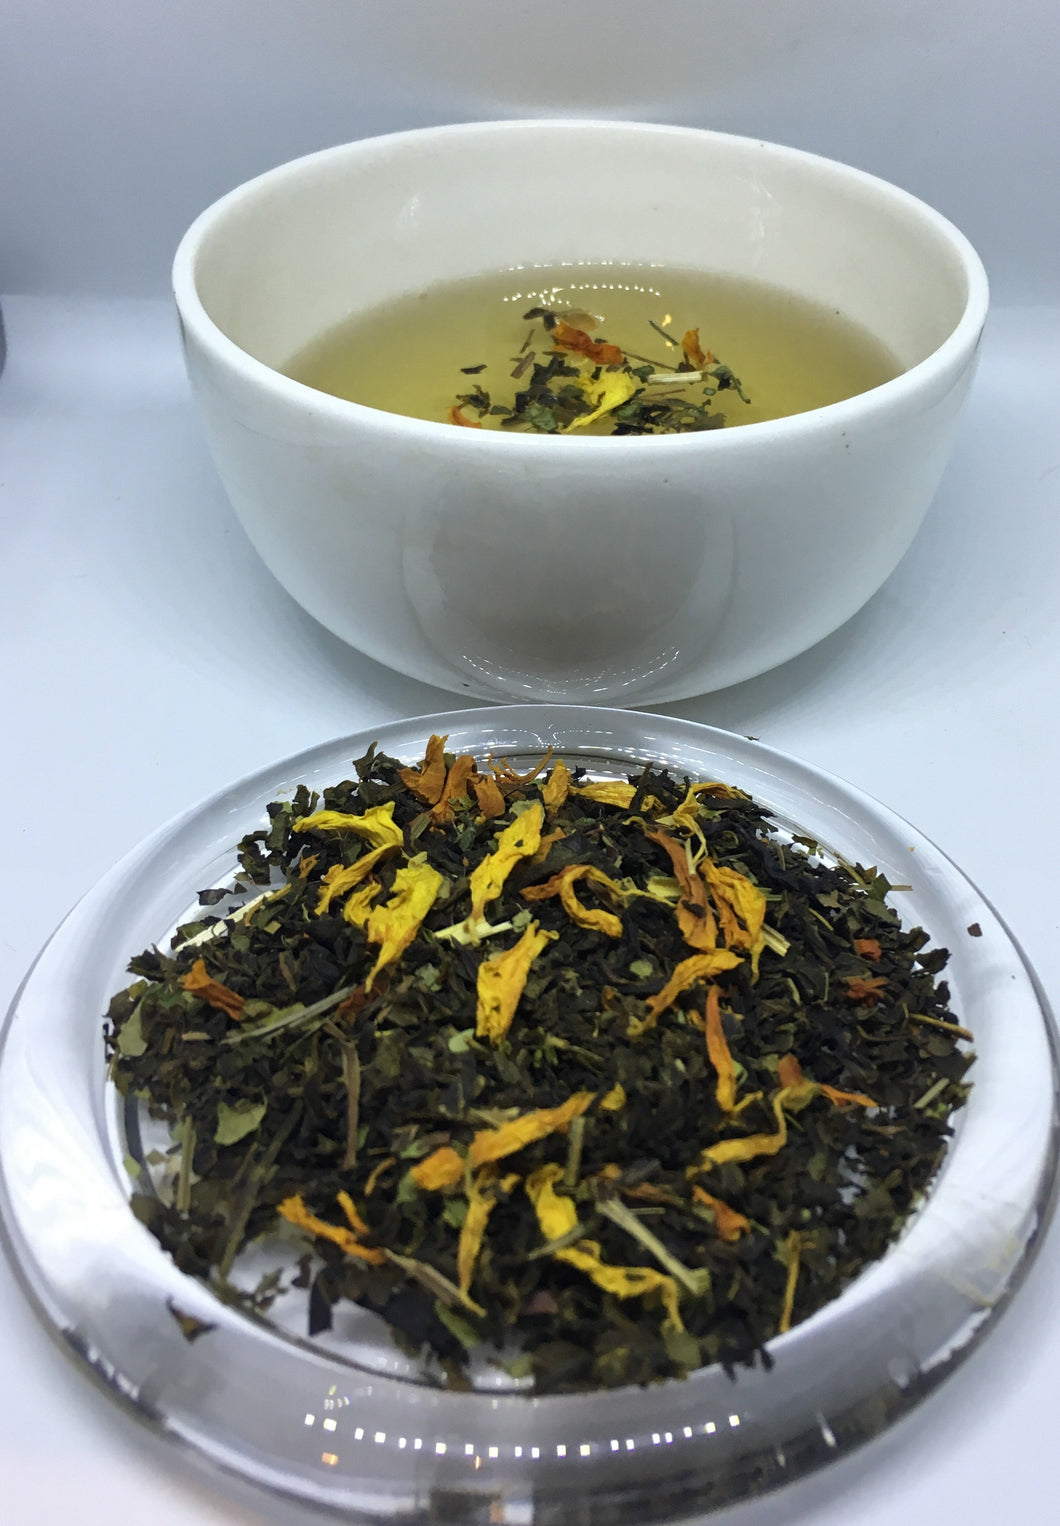 Lemon Grass Marigold Tea